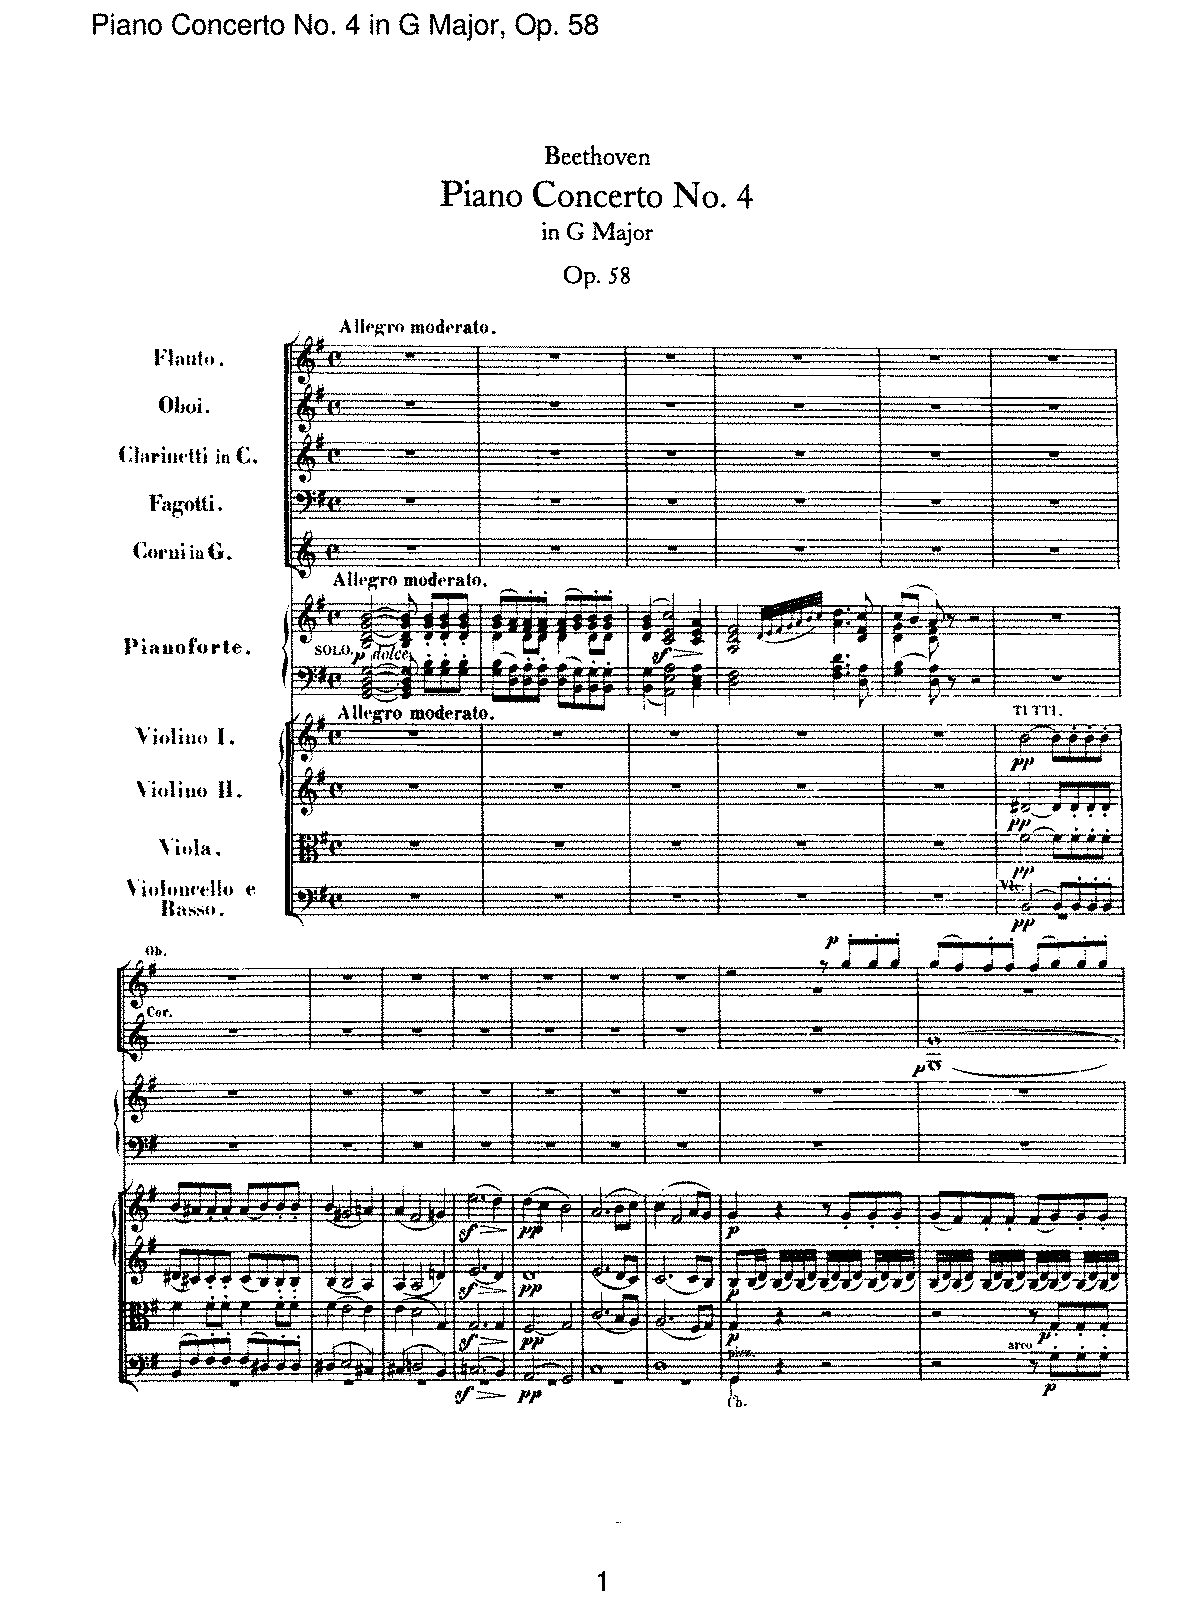 Piano Concerto No. 4 in G Major, Op. 58-I. Allegro moderato.pdf